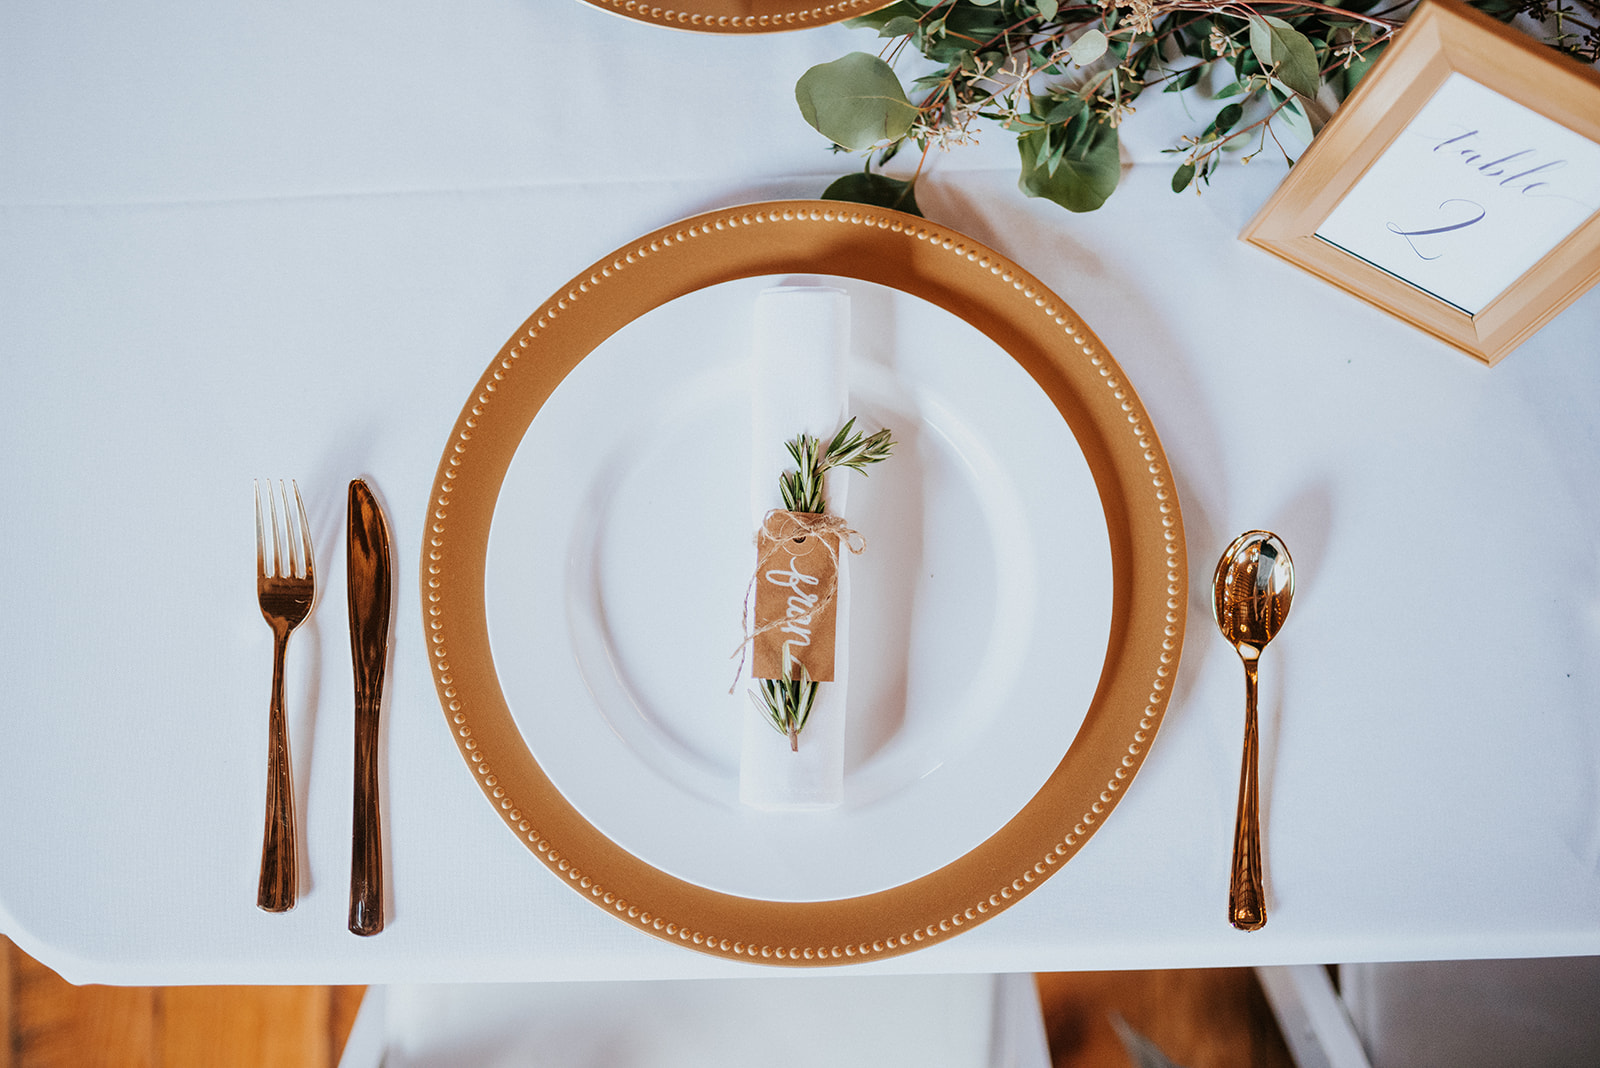 overthevineswisconsinwedding_1095.jpg